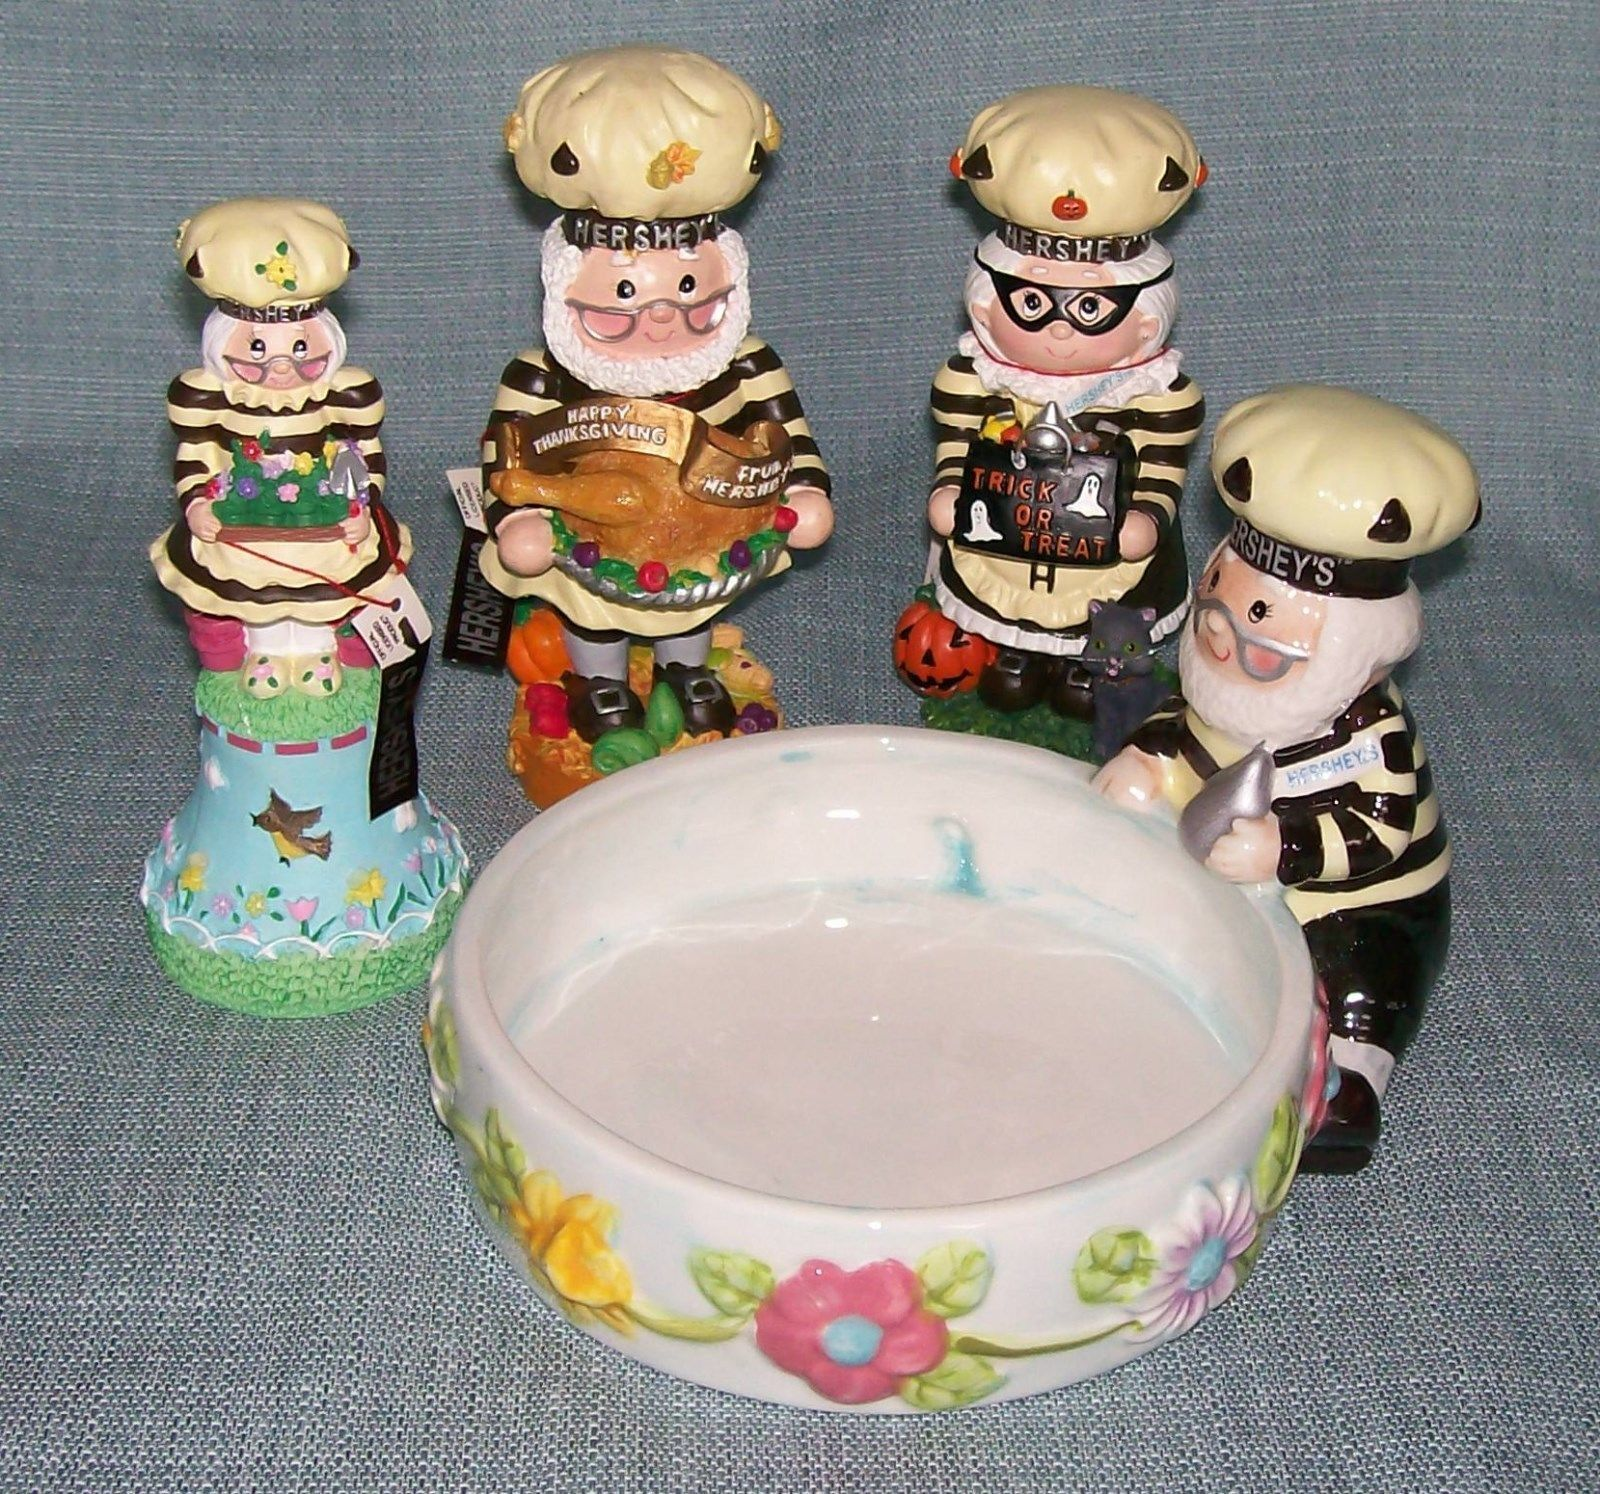 Hershey Collectibles-Spring Bell / Candy Dish, Thanksgiving, Halloween Figurines image 8